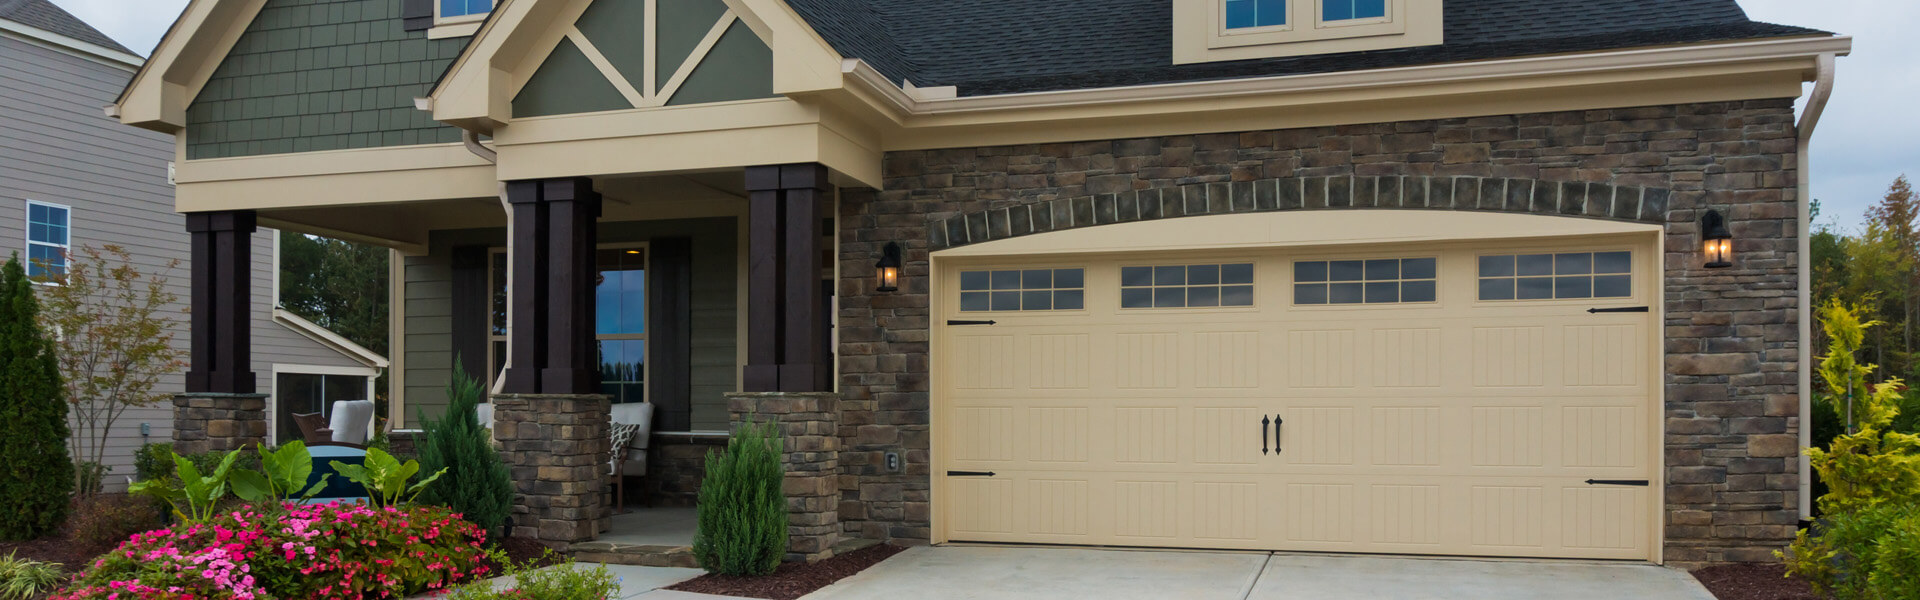 Exceptional Garage Doors In Preble County, OH | Garage Door Company